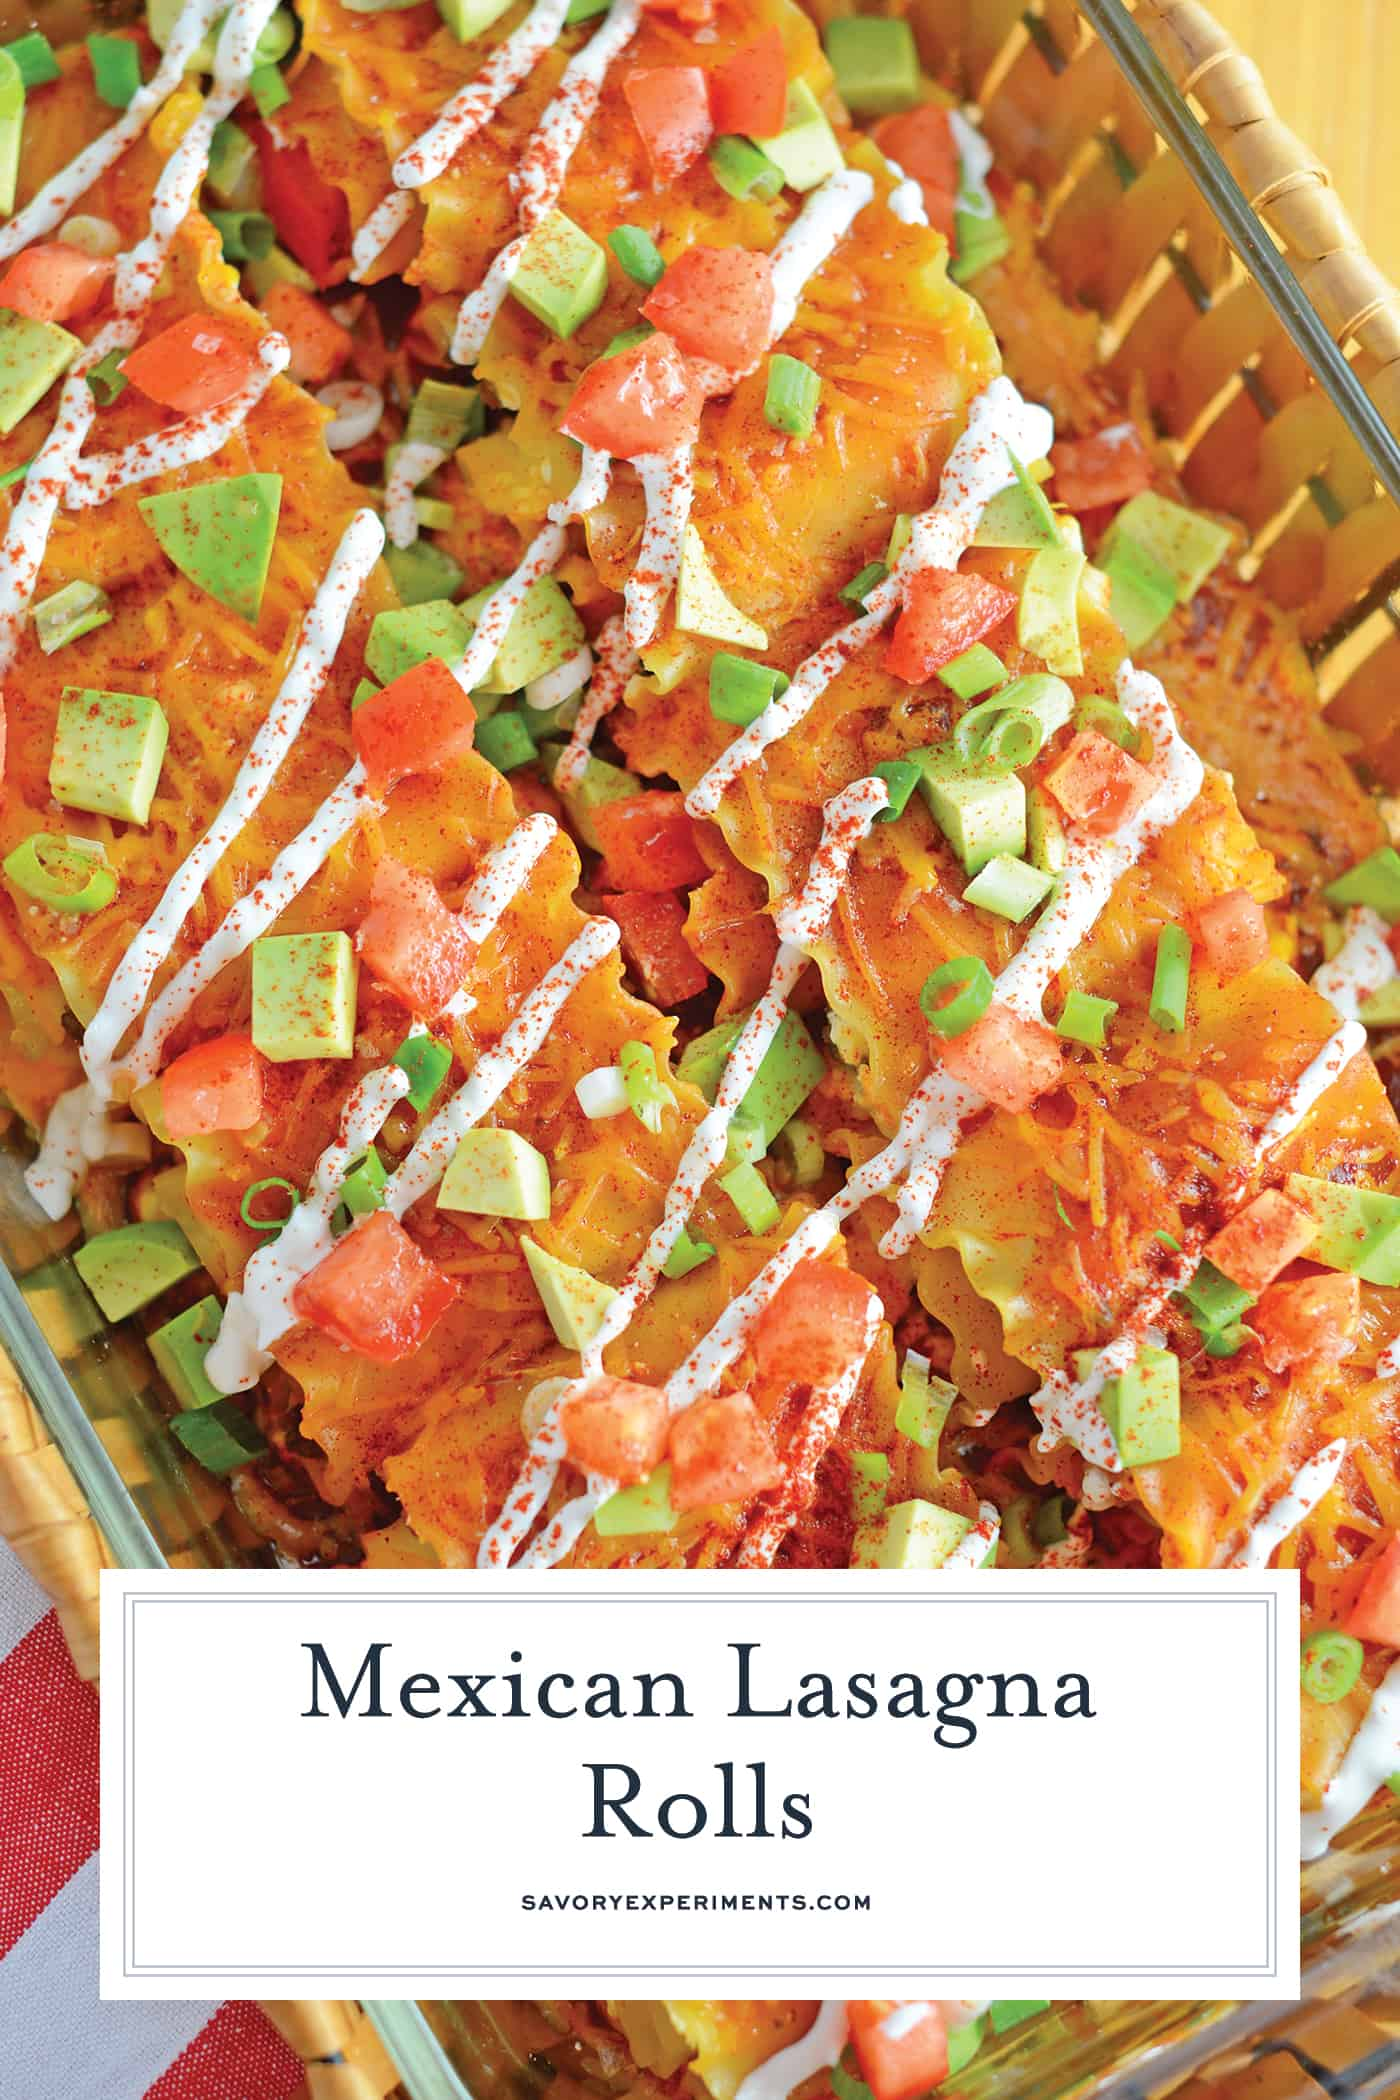 Mexican Lasagna Rolls are the best marriage of taco lasagna and traditional lasagna! They're so easy to put together, even the kids can help make them! #lasagnarollsrecipe #lasagnarollups #mexicanlasagnarecipes www.savoryexperiments.com